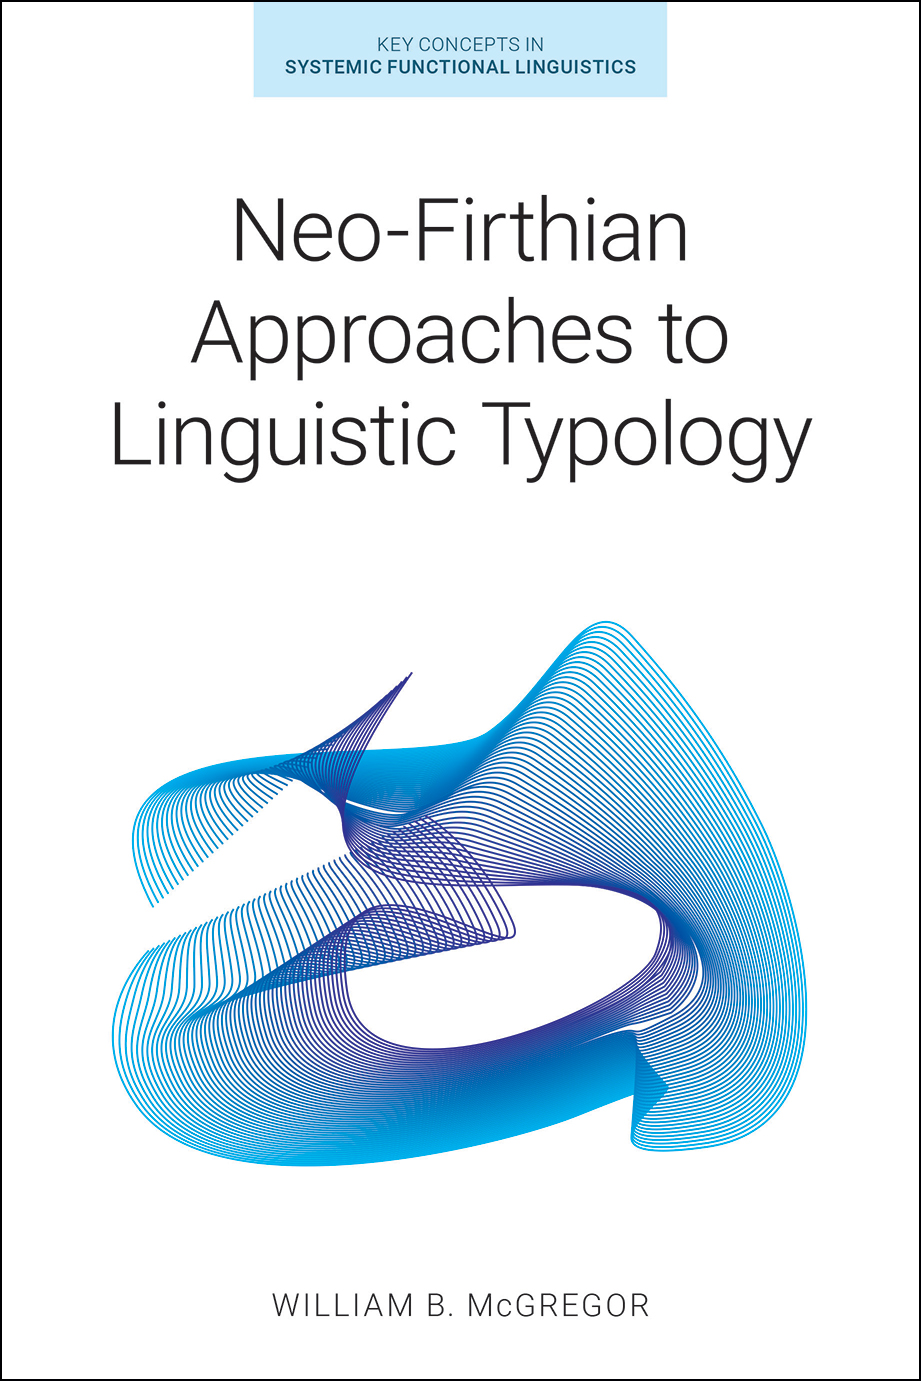 Neo-Firthian Approaches to Linguistic Typology